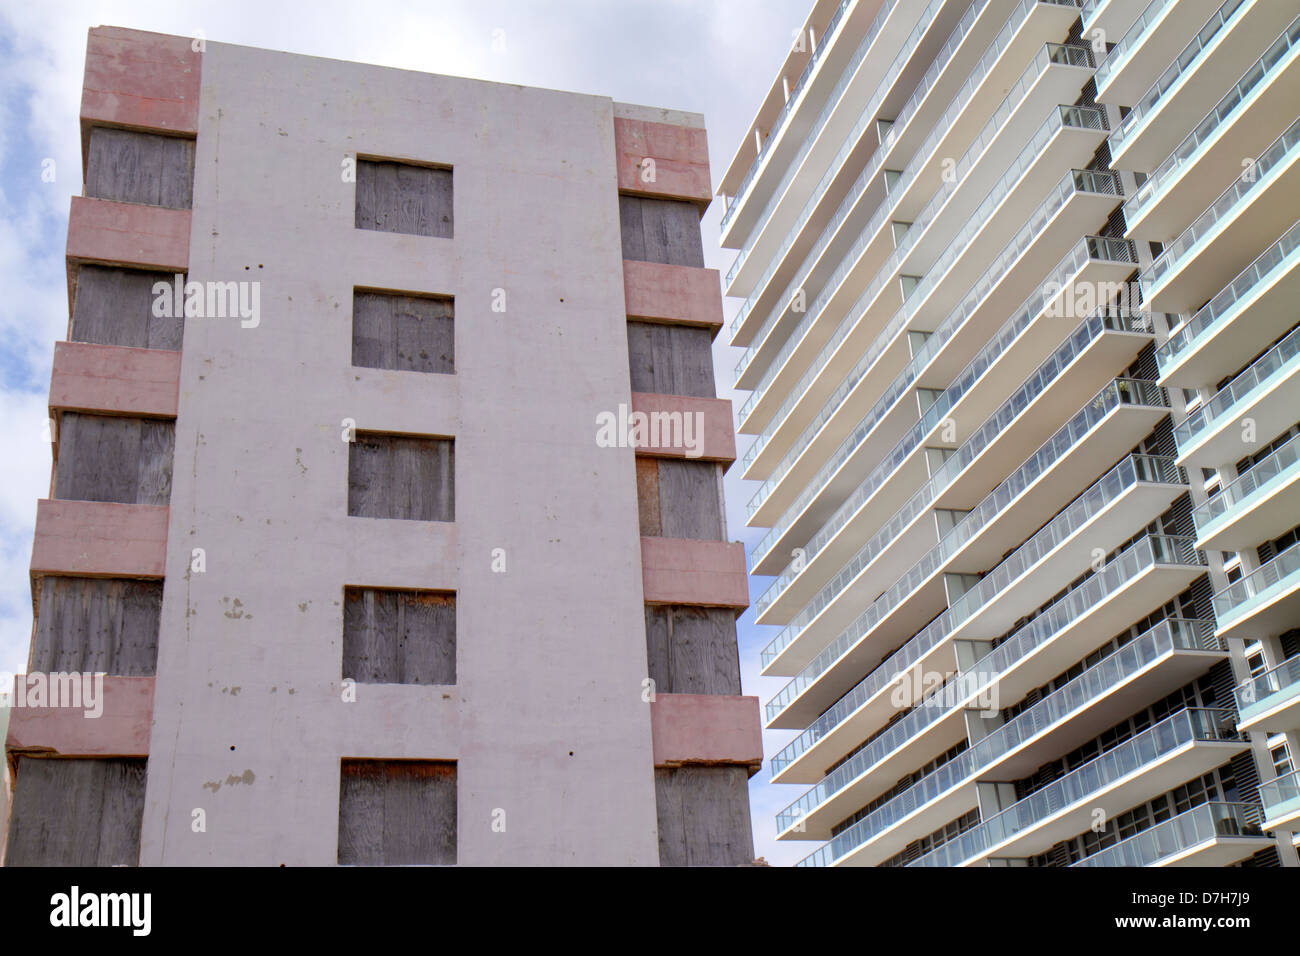 Florida, FL, South, Miami Beach, SoBe, Collins Avenue, hotel hotels lodging inn motel motels, closed, shuttered, Stock Photo